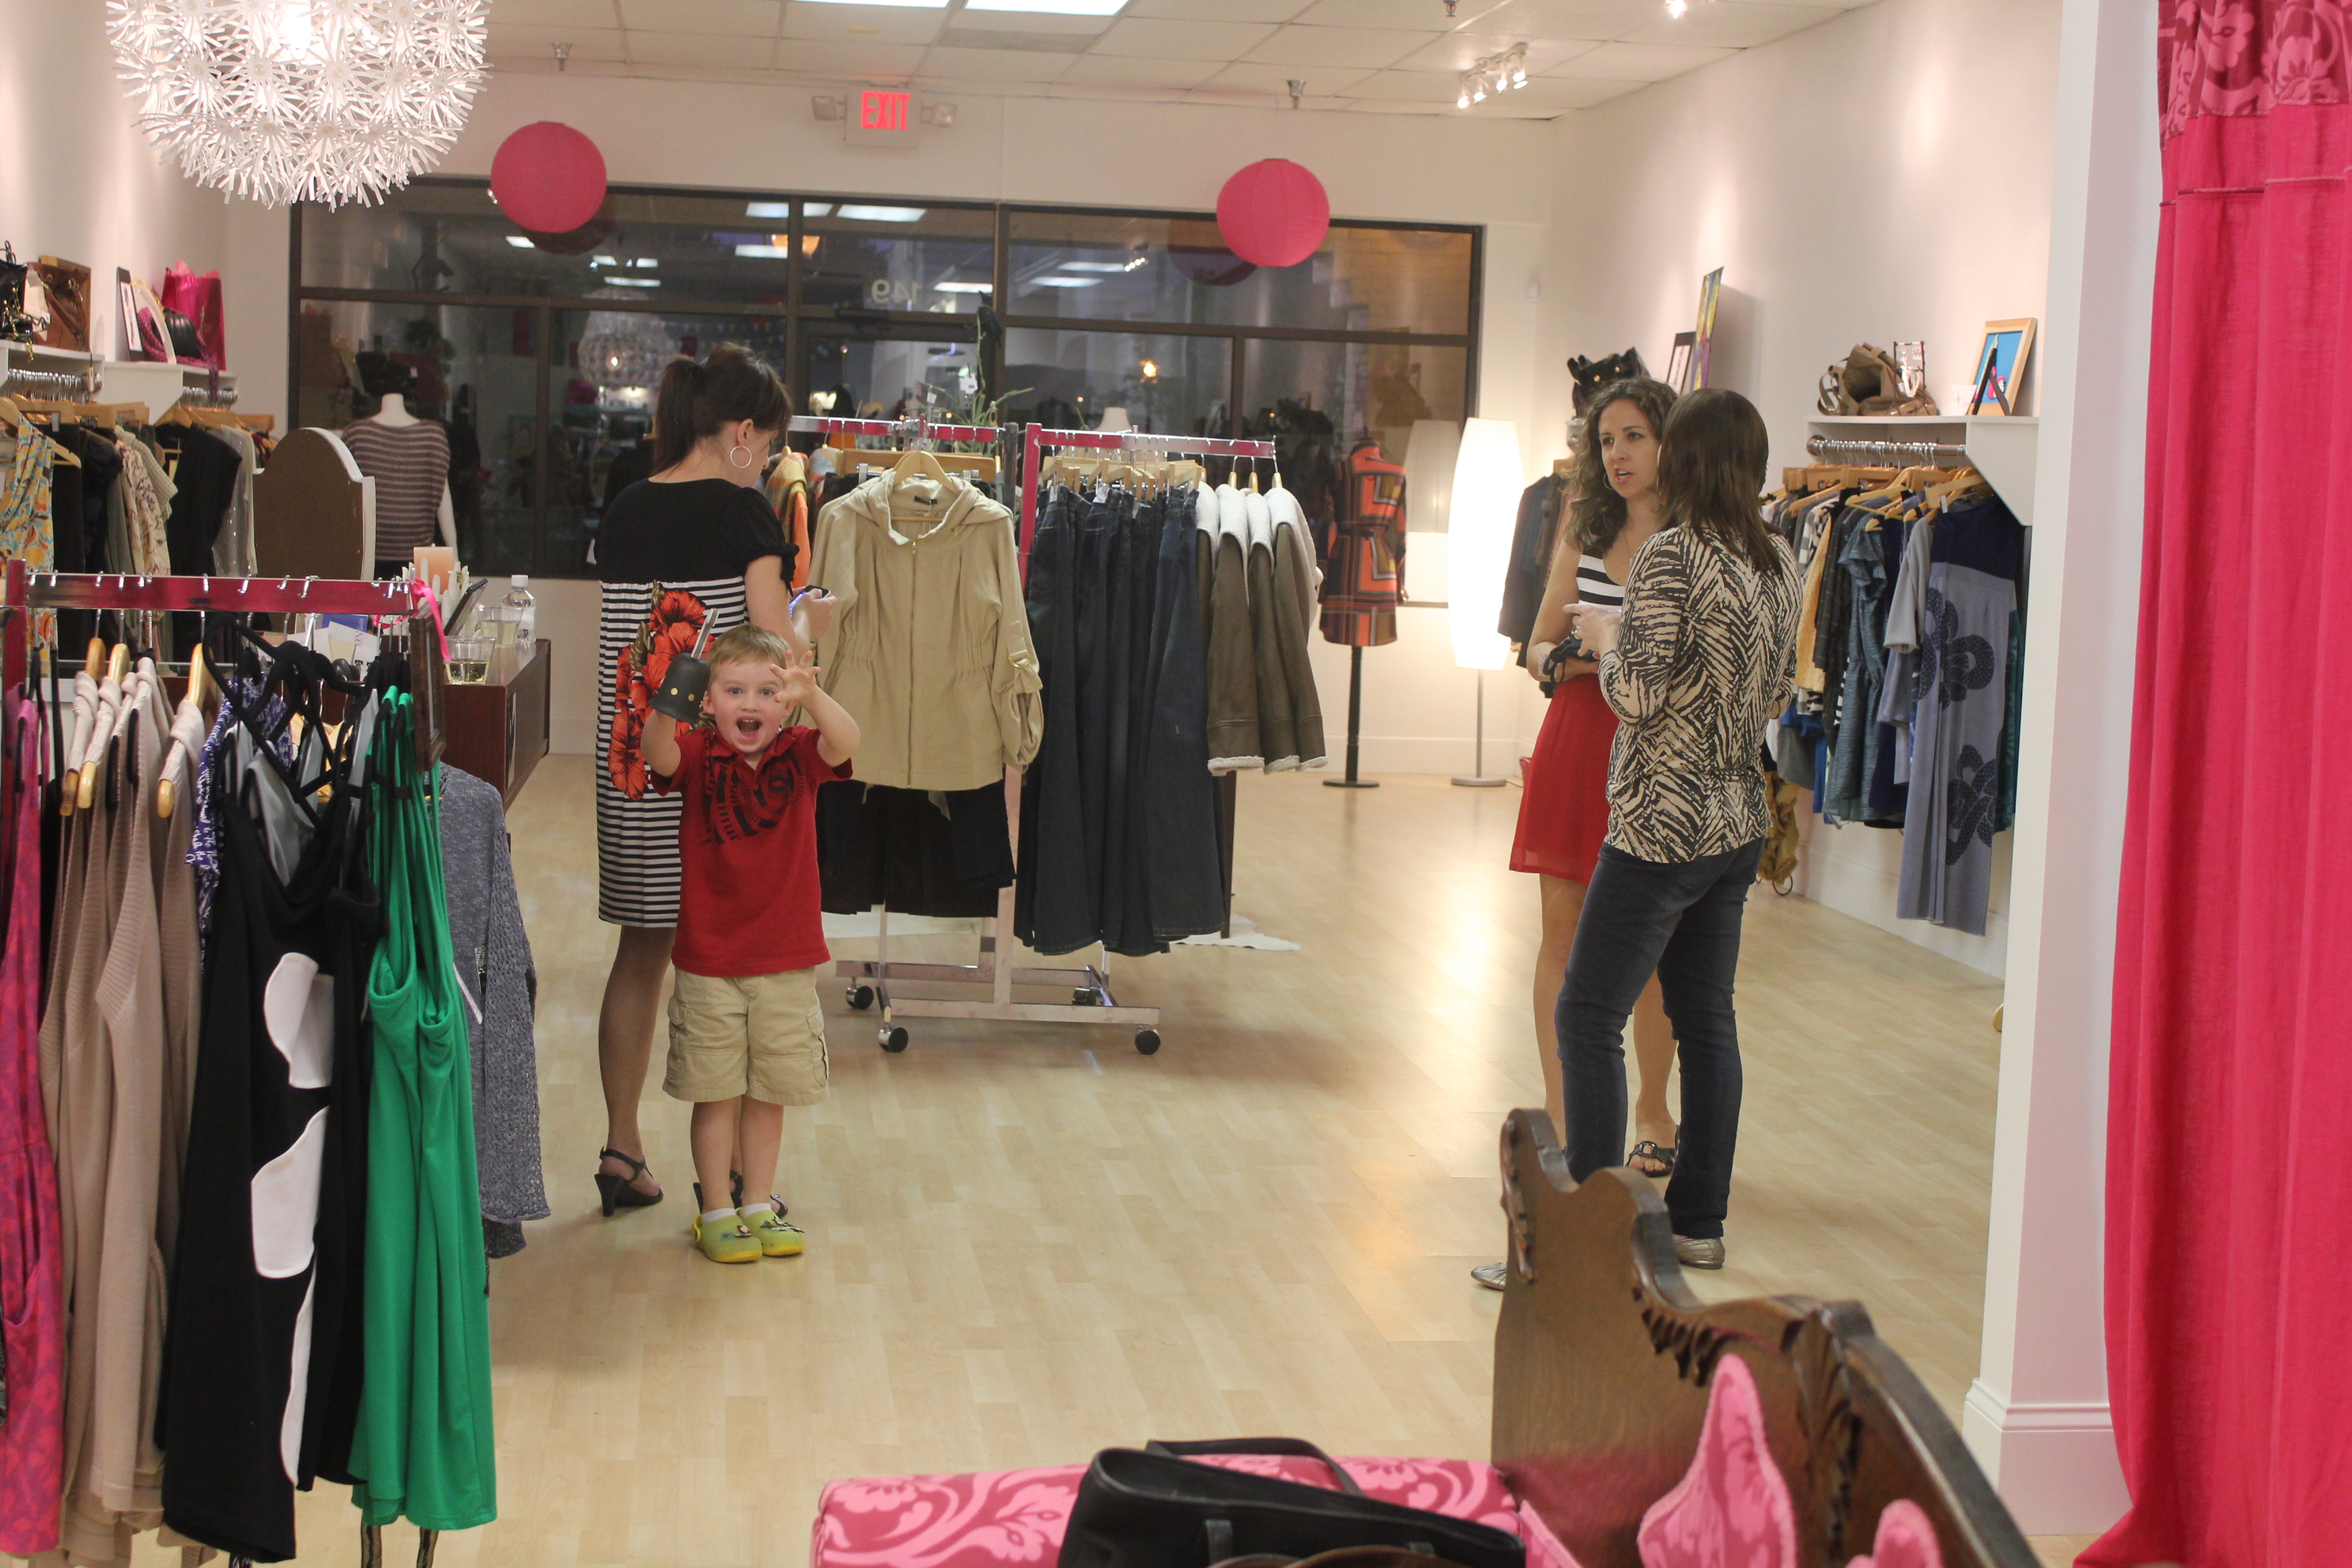 aea14fc5c Checking out the latest fashions Such a cute shop Happy shopper